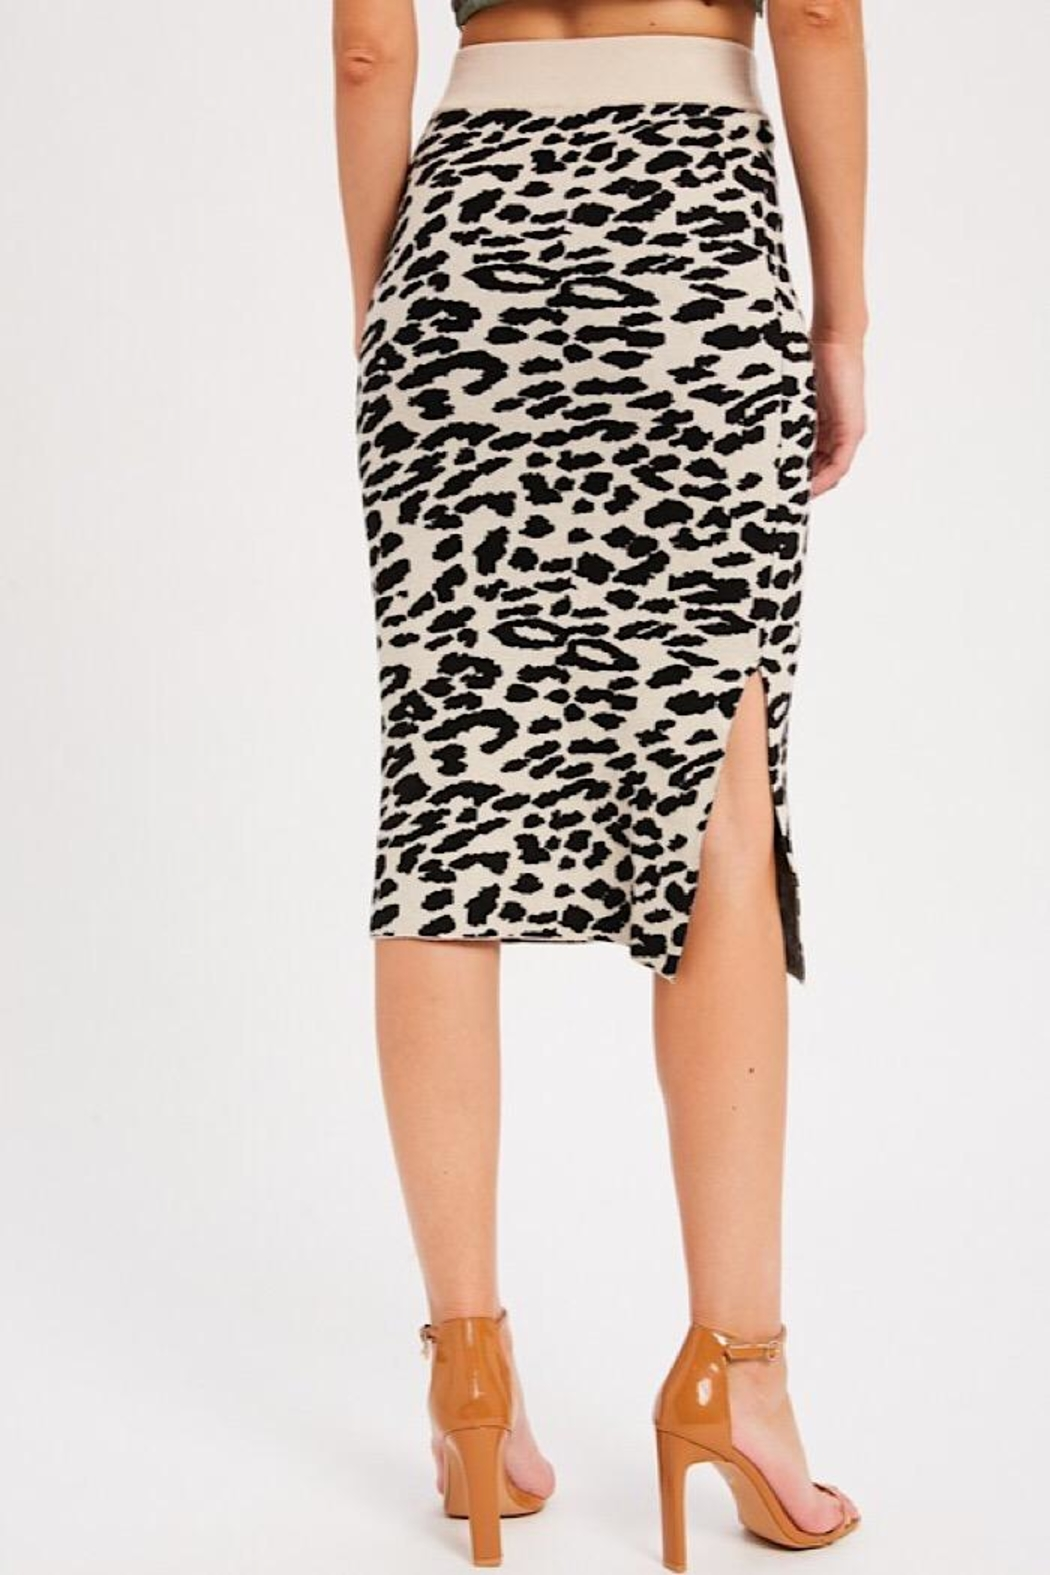 Wishlist Leopard Causal Knit Skirt - Side Cropped Image